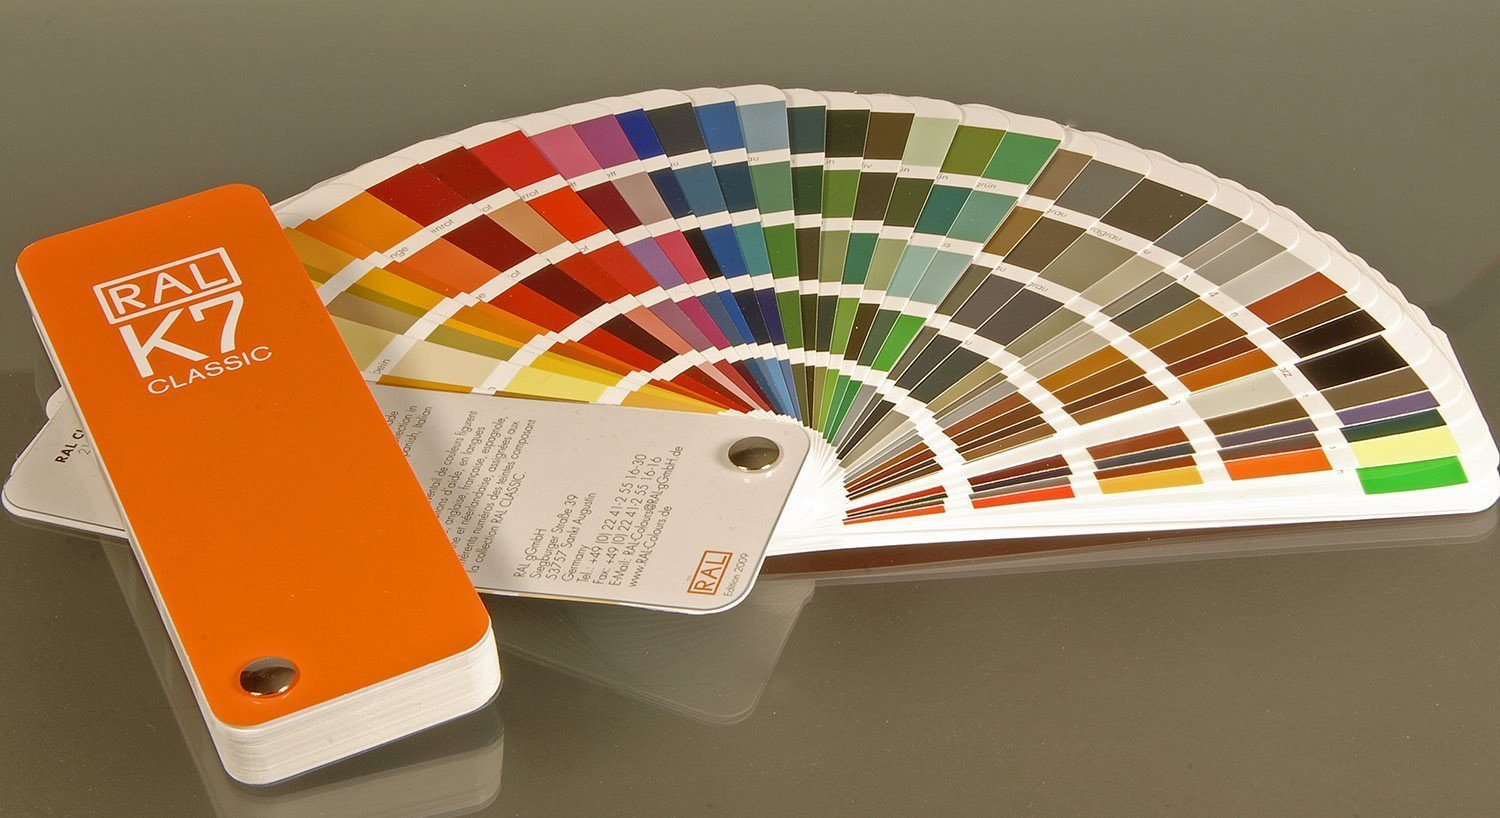 Ral Classic Colours Ral K7 Colour Fan Deck With 213 Ideedaprodurre